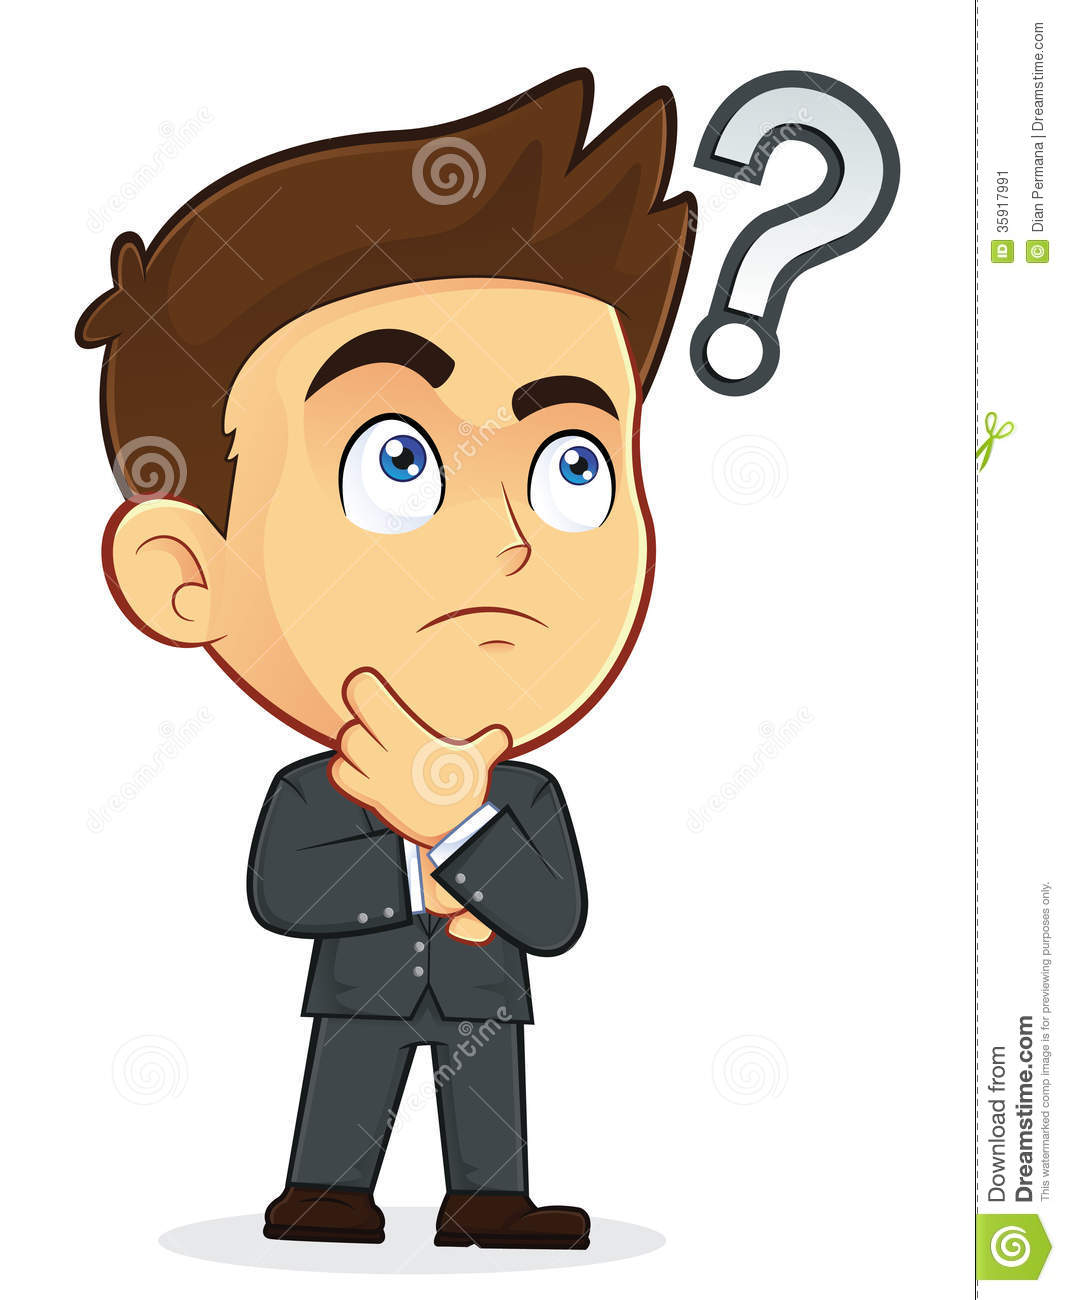 Questioned clipart - Clipground